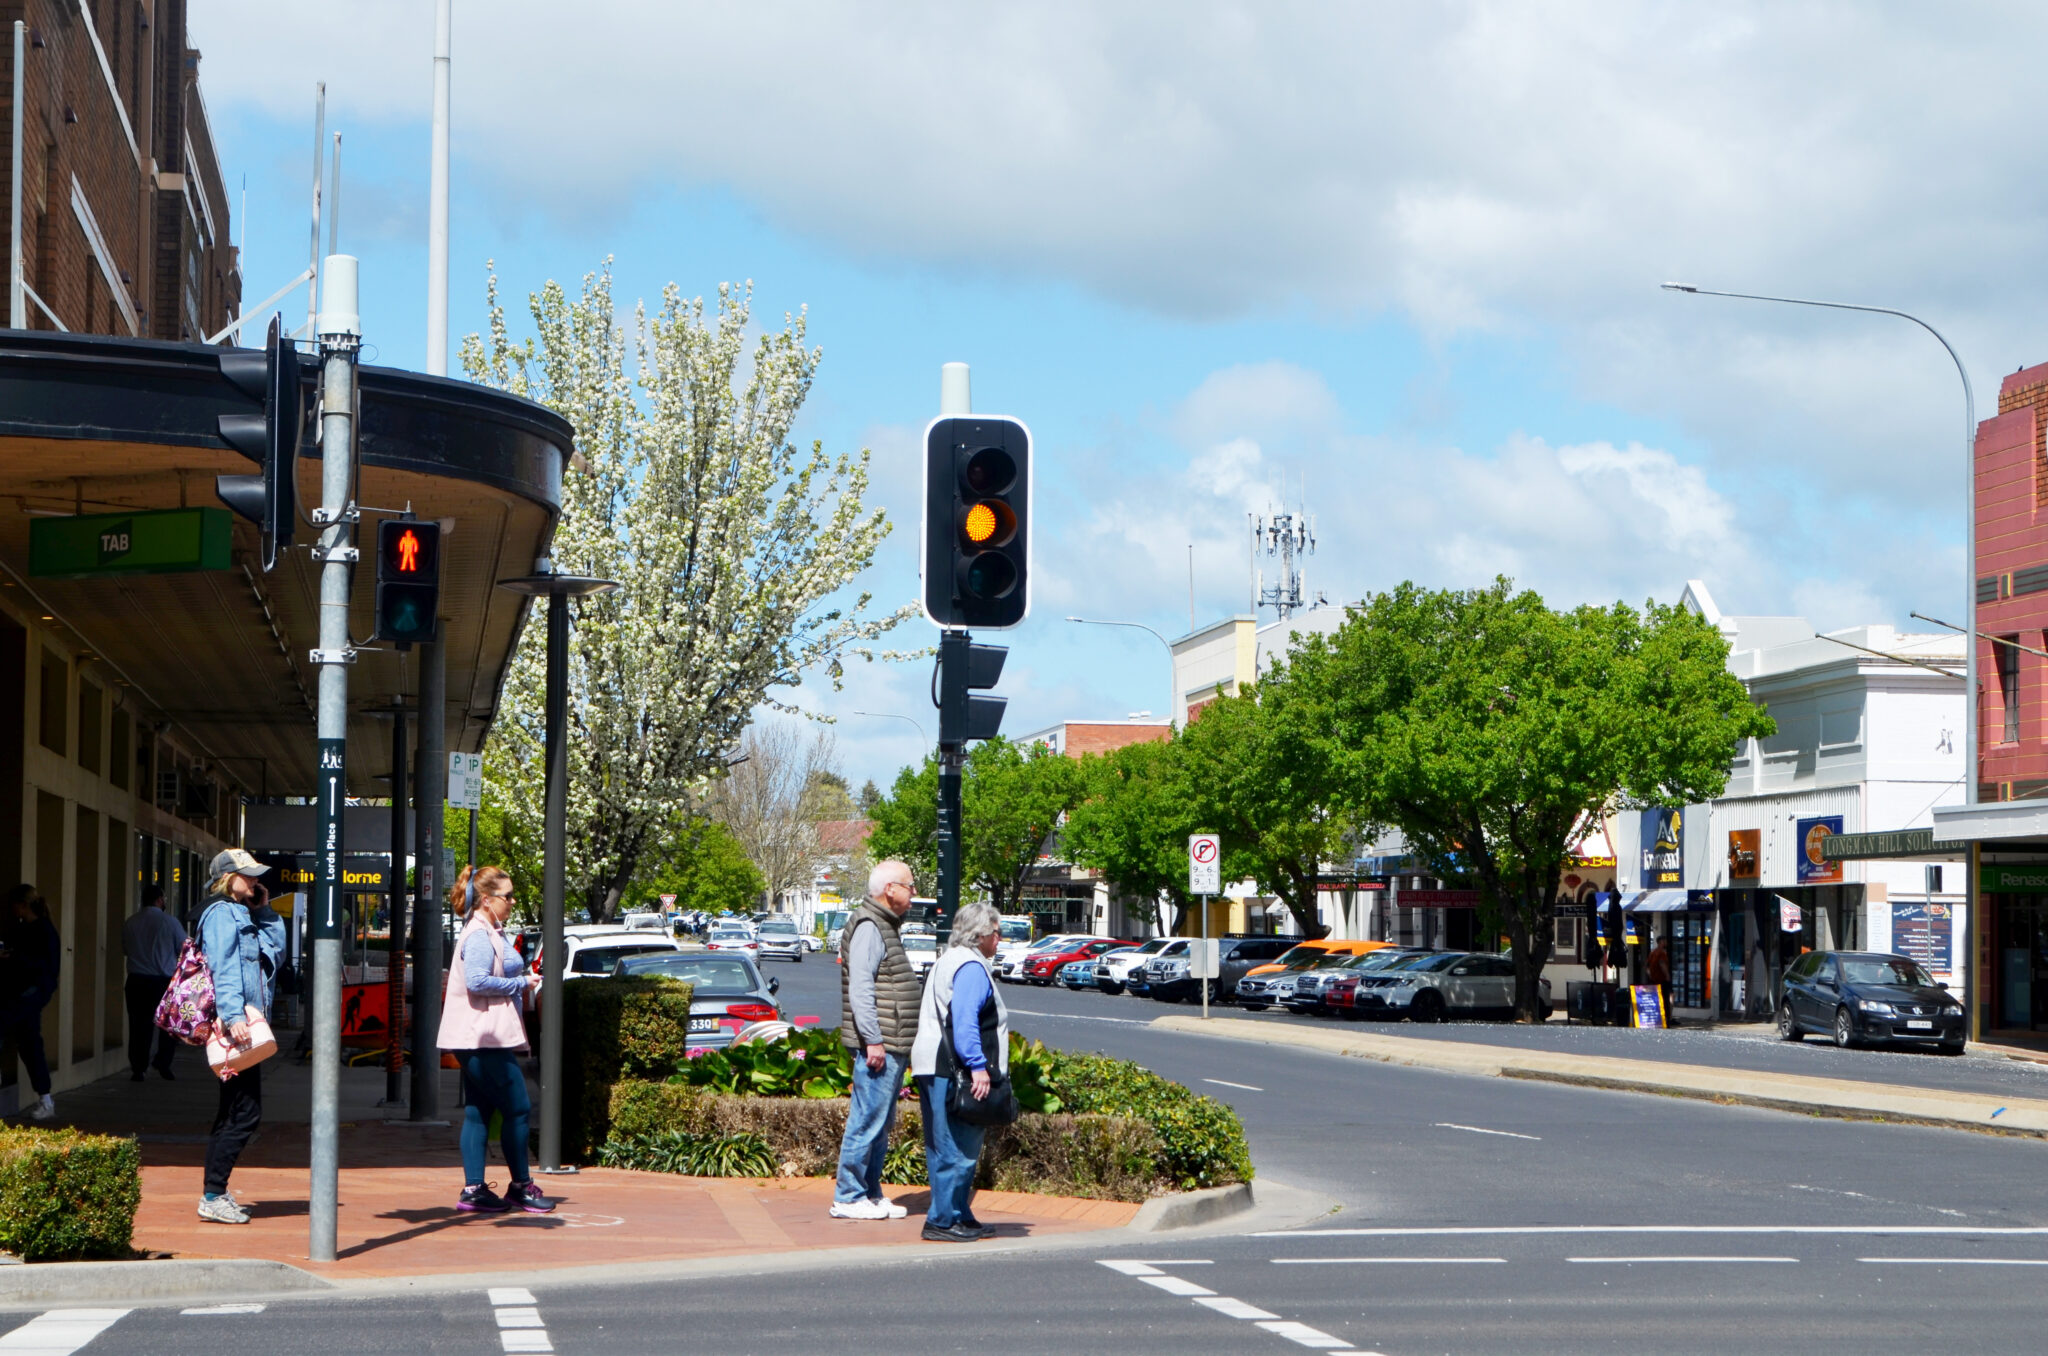 A scramble crossing in proposed for the Lords Place and Summer Street intersection.